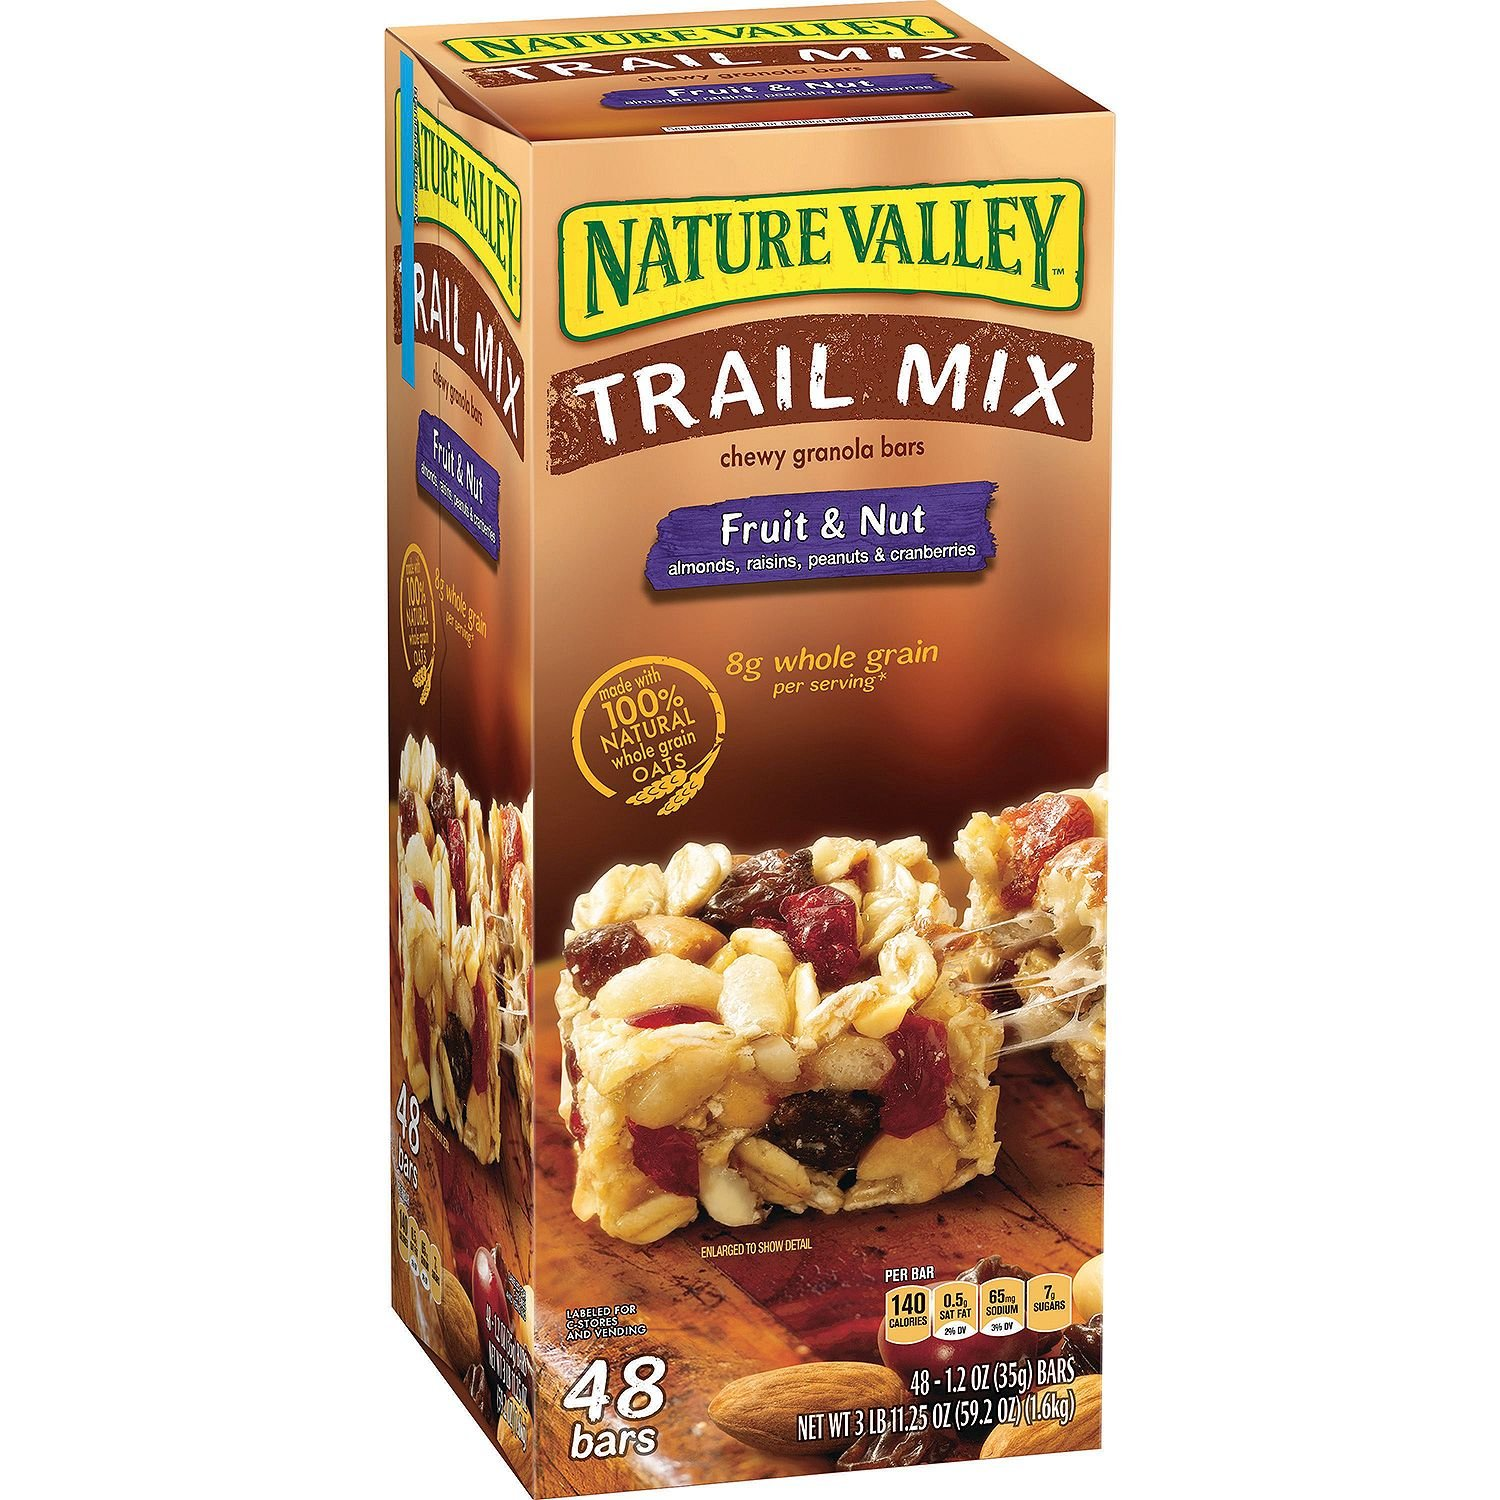 Nature Valley Fruit & Nut Chewy Trail Mix Granola Bars, 3 Pound